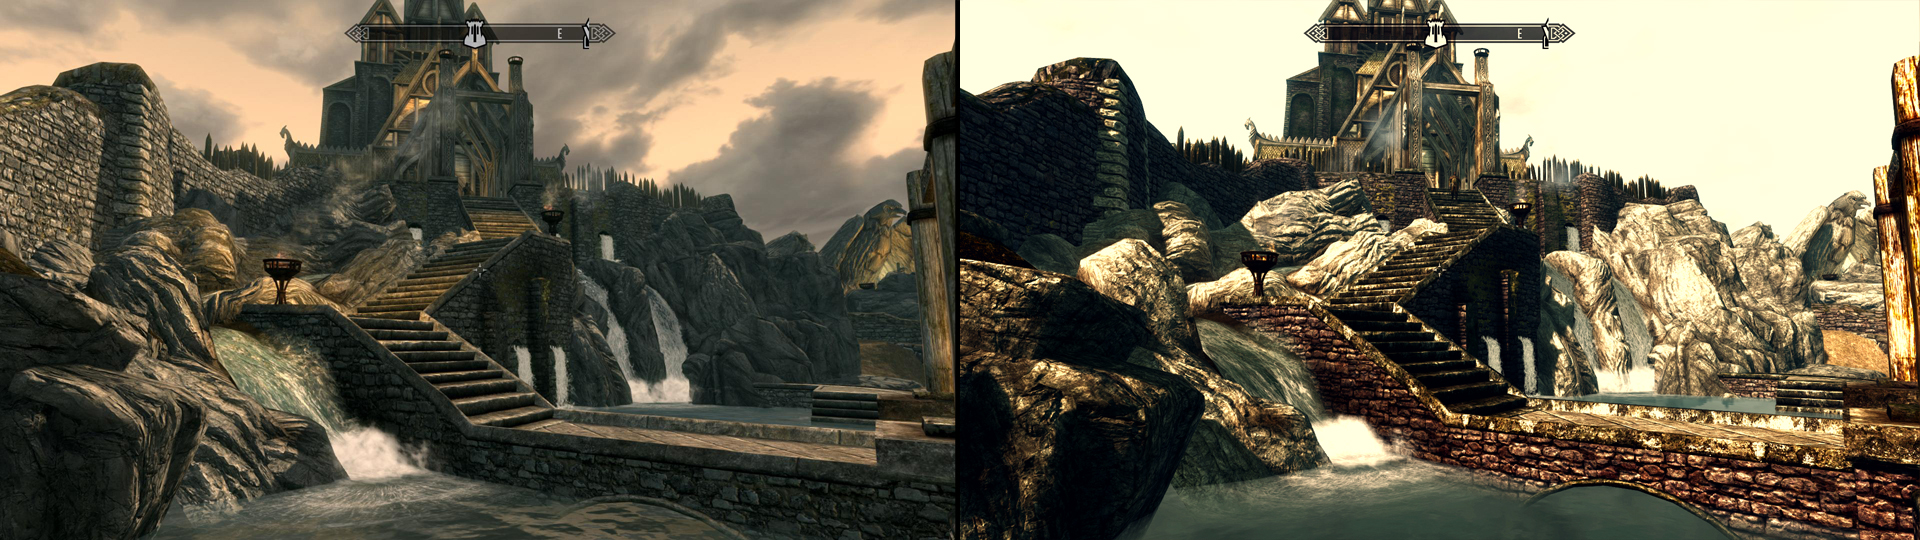 Best Skyrim Graphics Mods: Before and After | GamersNexus